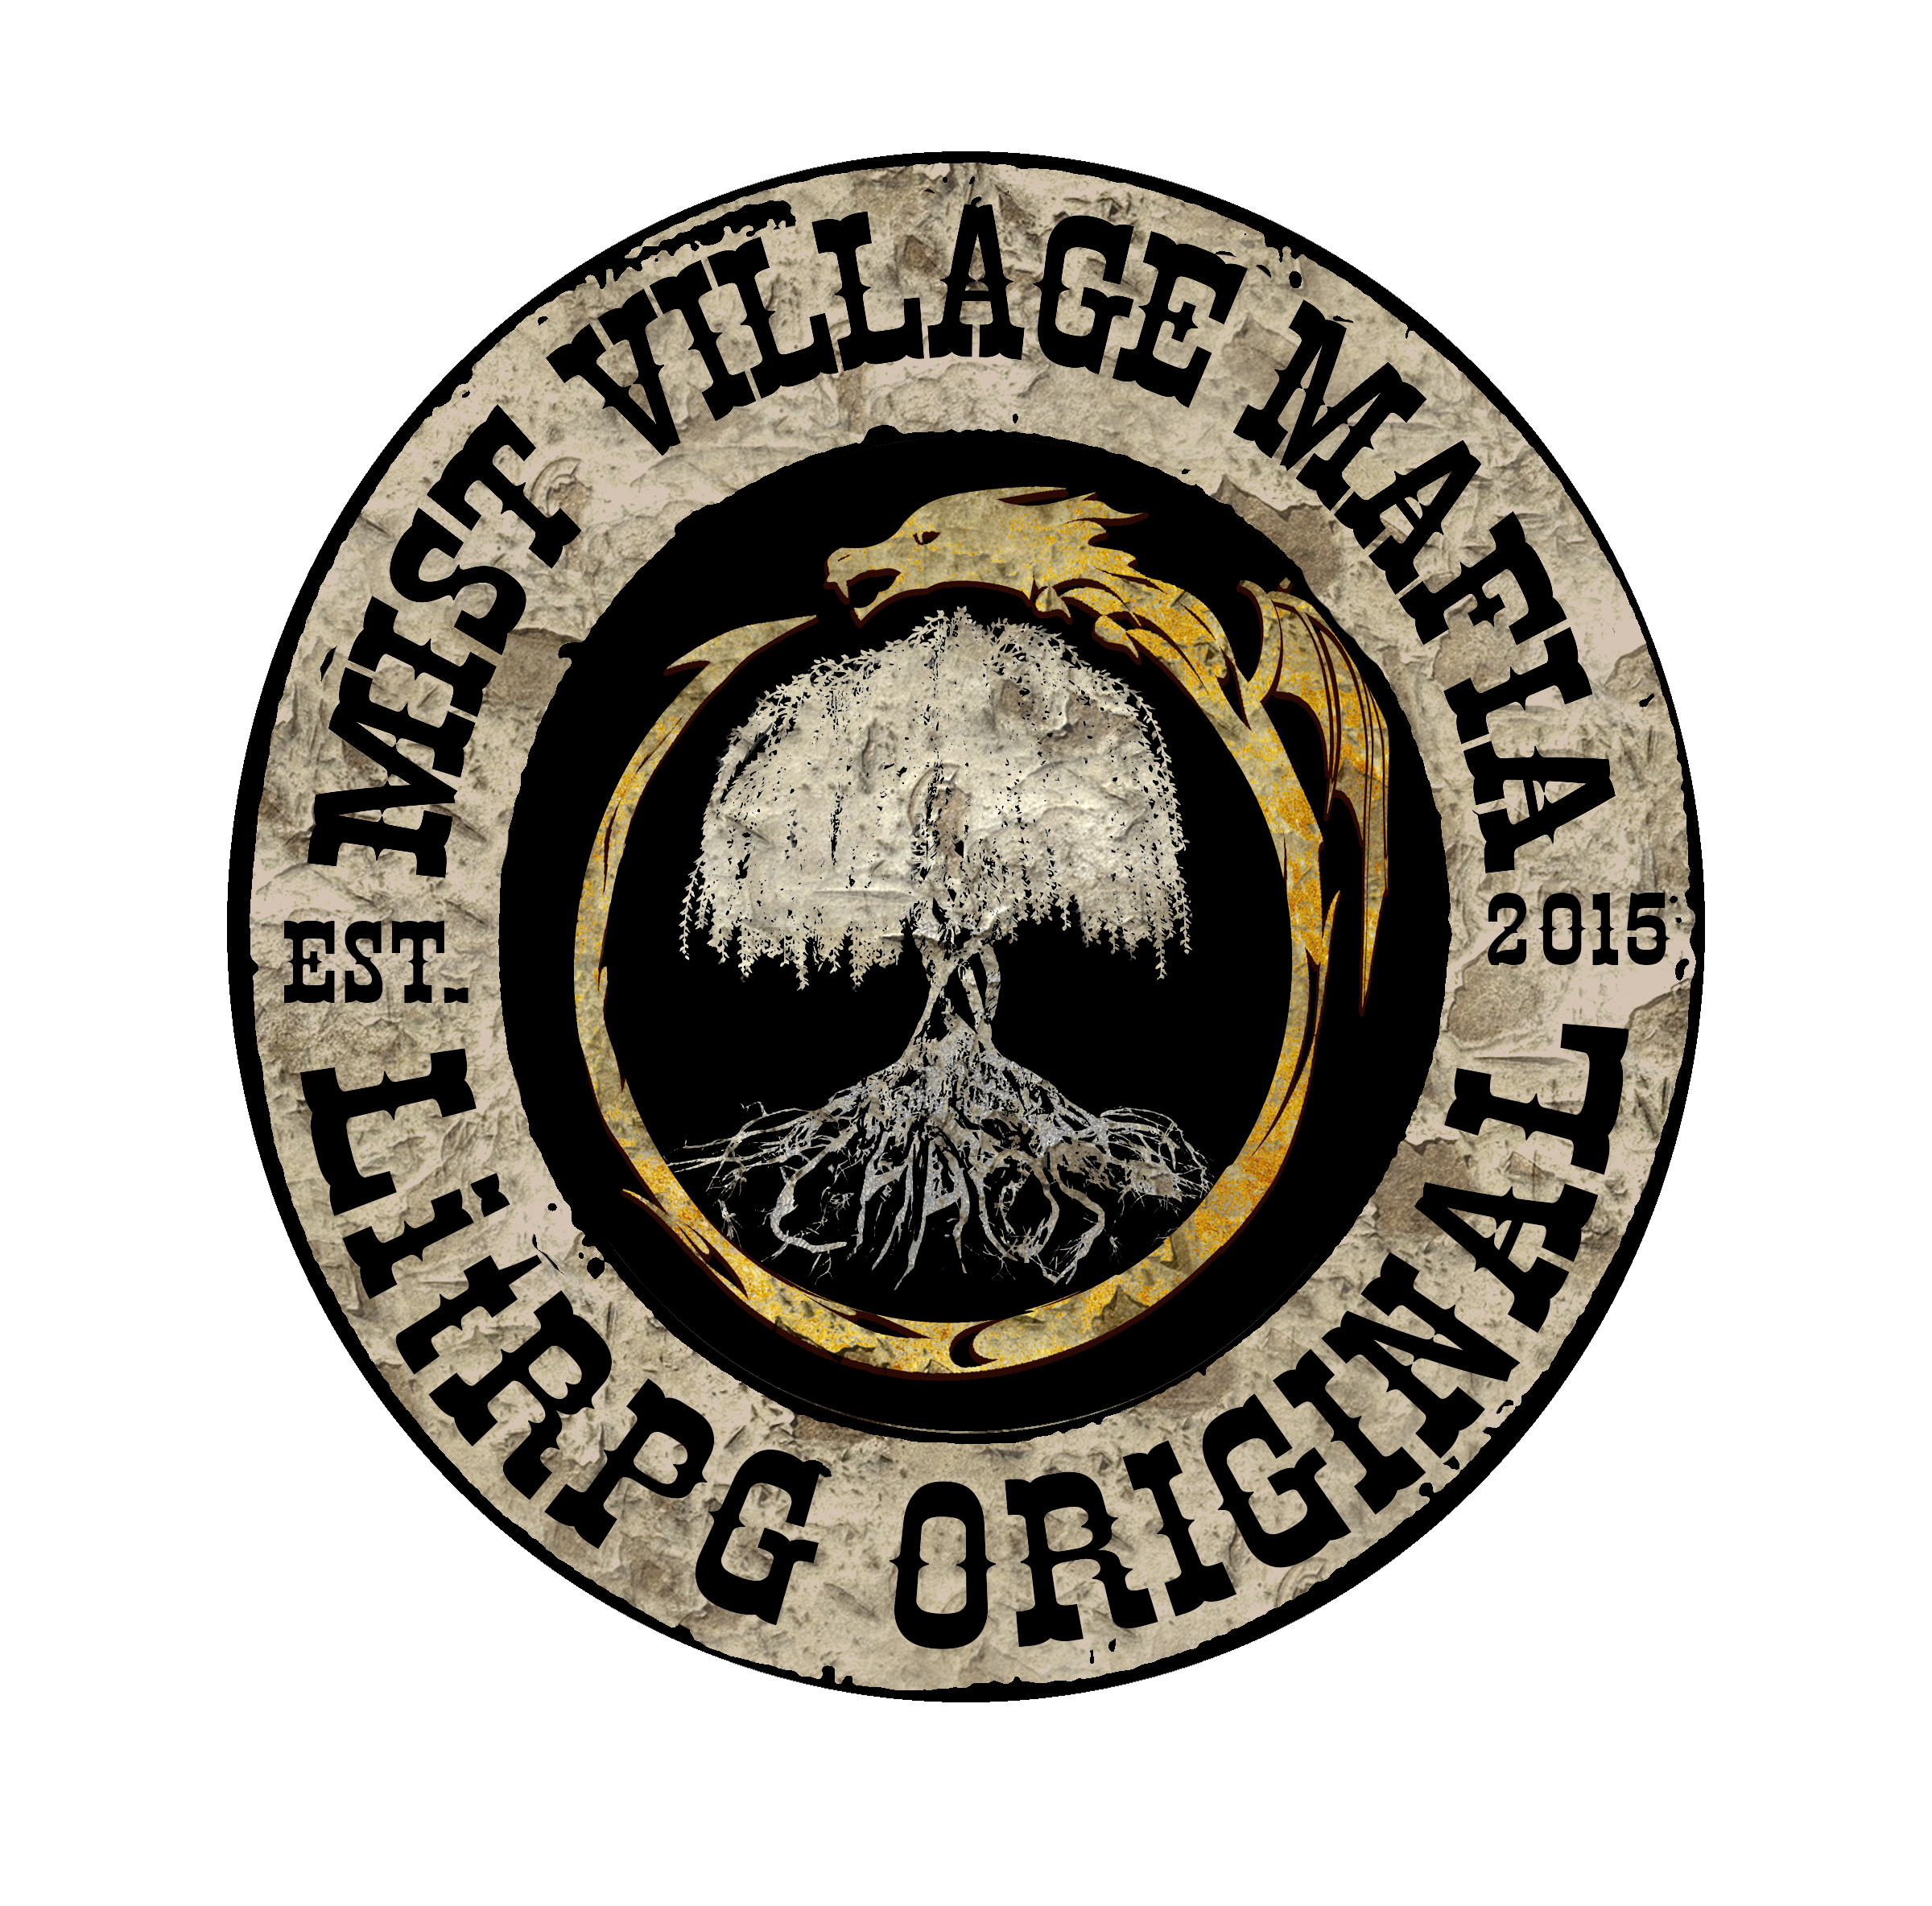 Mist Village Mafia - If you're already a Professional of The Land and want to discuss it with other members of the Mist Village Mafia, we have a group right here:https://www.facebook.com/groups/AleronKong/